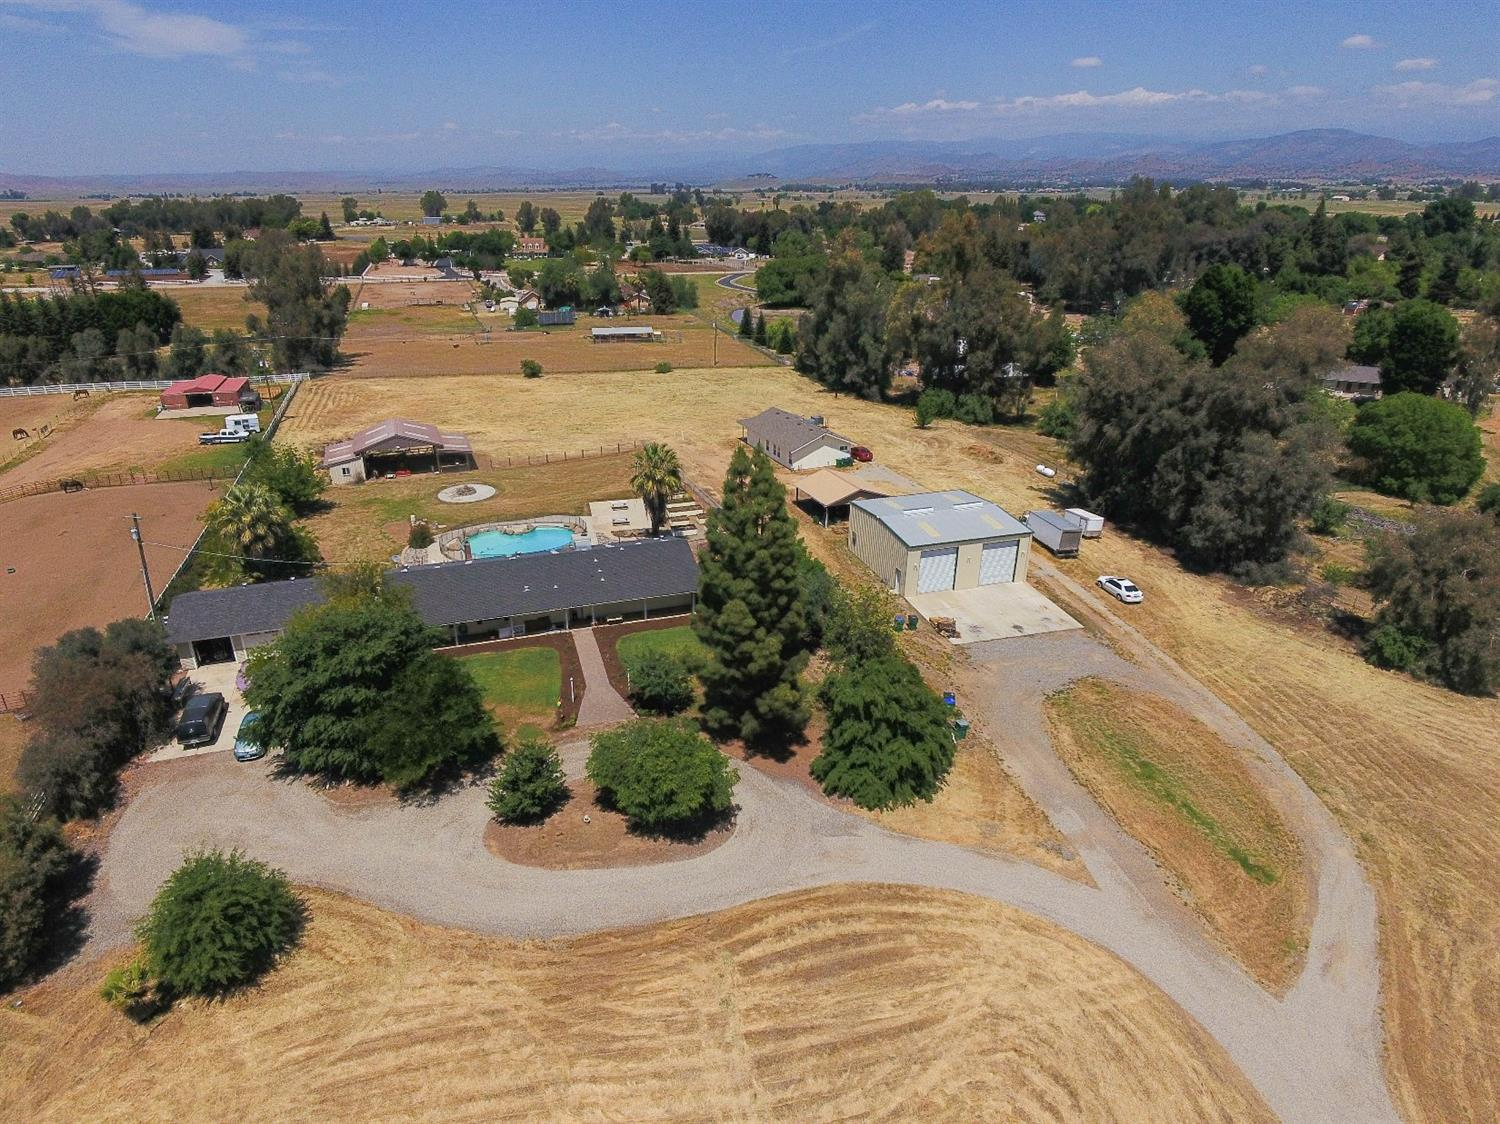 2 Homes on 4 77 acres. Clovis School District. Horse Property! Very tranquil area on non busy street. All the amenities you could dream of! Main house is 4 bedrooms, 2.5 baths, 2310 sf. Enter into the great room with sunny views to the large pool. Nice corner fireplace for cooler nights. Kitchen fully remodeled. Open concept. There is also a family room and bonus room. Oversized bedrooms, hickory wood floors, carpet in bedrooms. New 3 car garage. 2nd home built in 2016, 2 bedrooms, 2 baths, 1280 sf, granite counters, wood floors, walk in showers, wood shutters. Great for extended family or other use. Separate utilities and meters. Pole barn, stables, fire pit and patio for evening enjoyment. Anlin windows, 40x40 Borga Shop, fully insulated, w/ 12 ft heavy duty roll up doors w/30 ft of concrete. Property fully fenced. Well:28 gpm, water at 44, pump at 105 ft. Constant Pressure System, 2500 gallon holding tank.  Priced low to sell quick!  Hurry before it is gone!